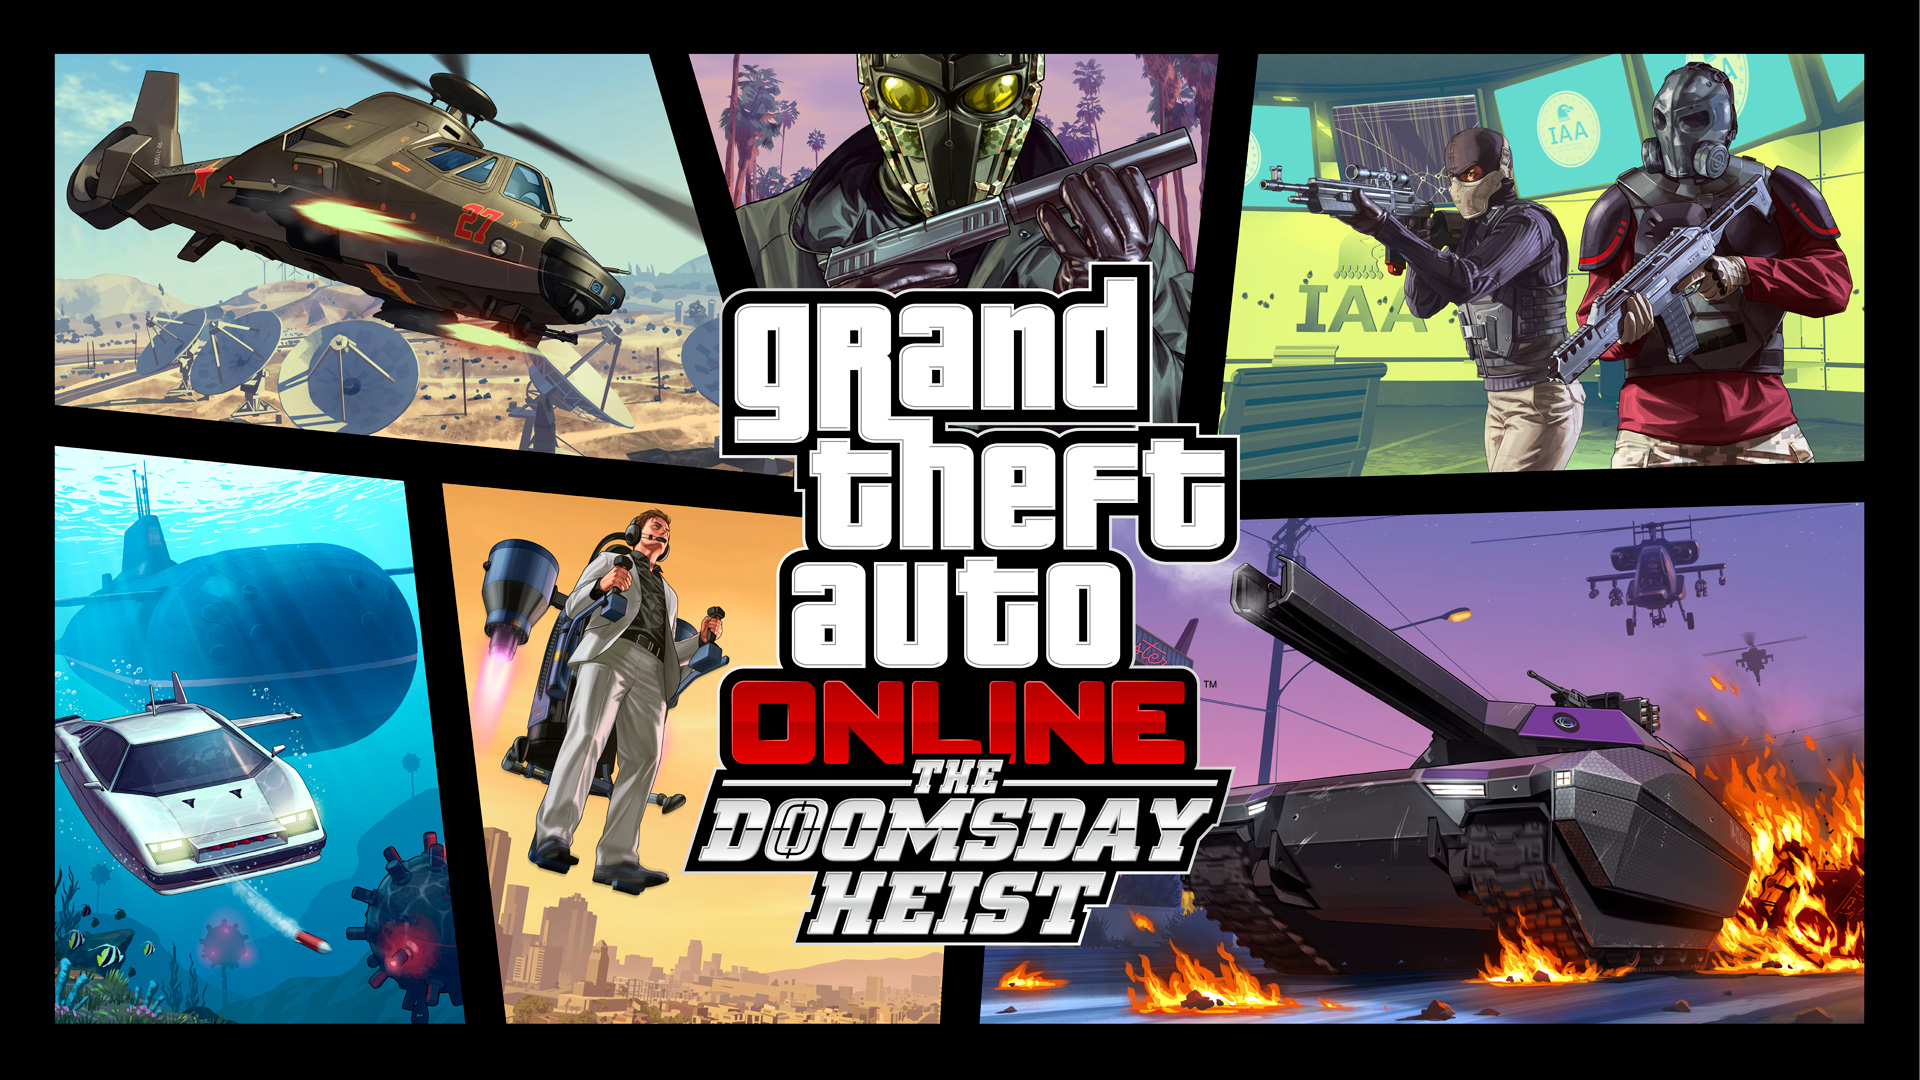 GTA Online's Doomsday Heist is live now and features a $900,000